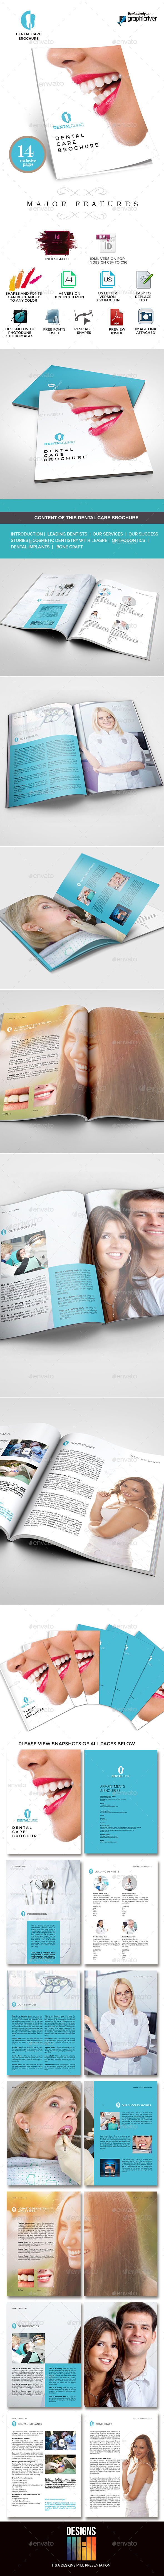 Dental Clinic Services or Care Brochure